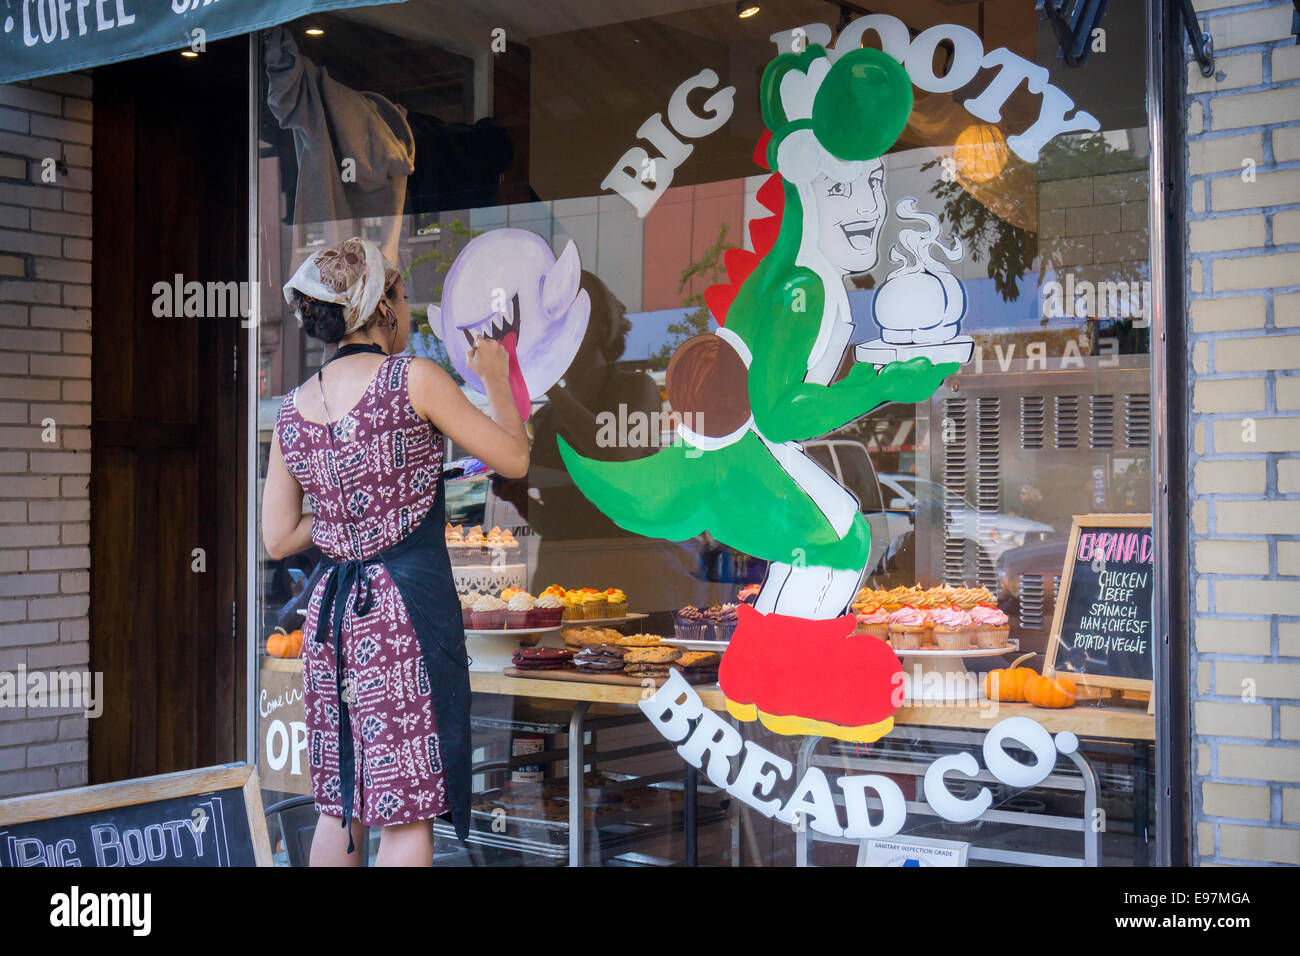 A sign painter decorates the window of the Big Booty Bread Co. bakery in Chelsea in New York - Stock Image